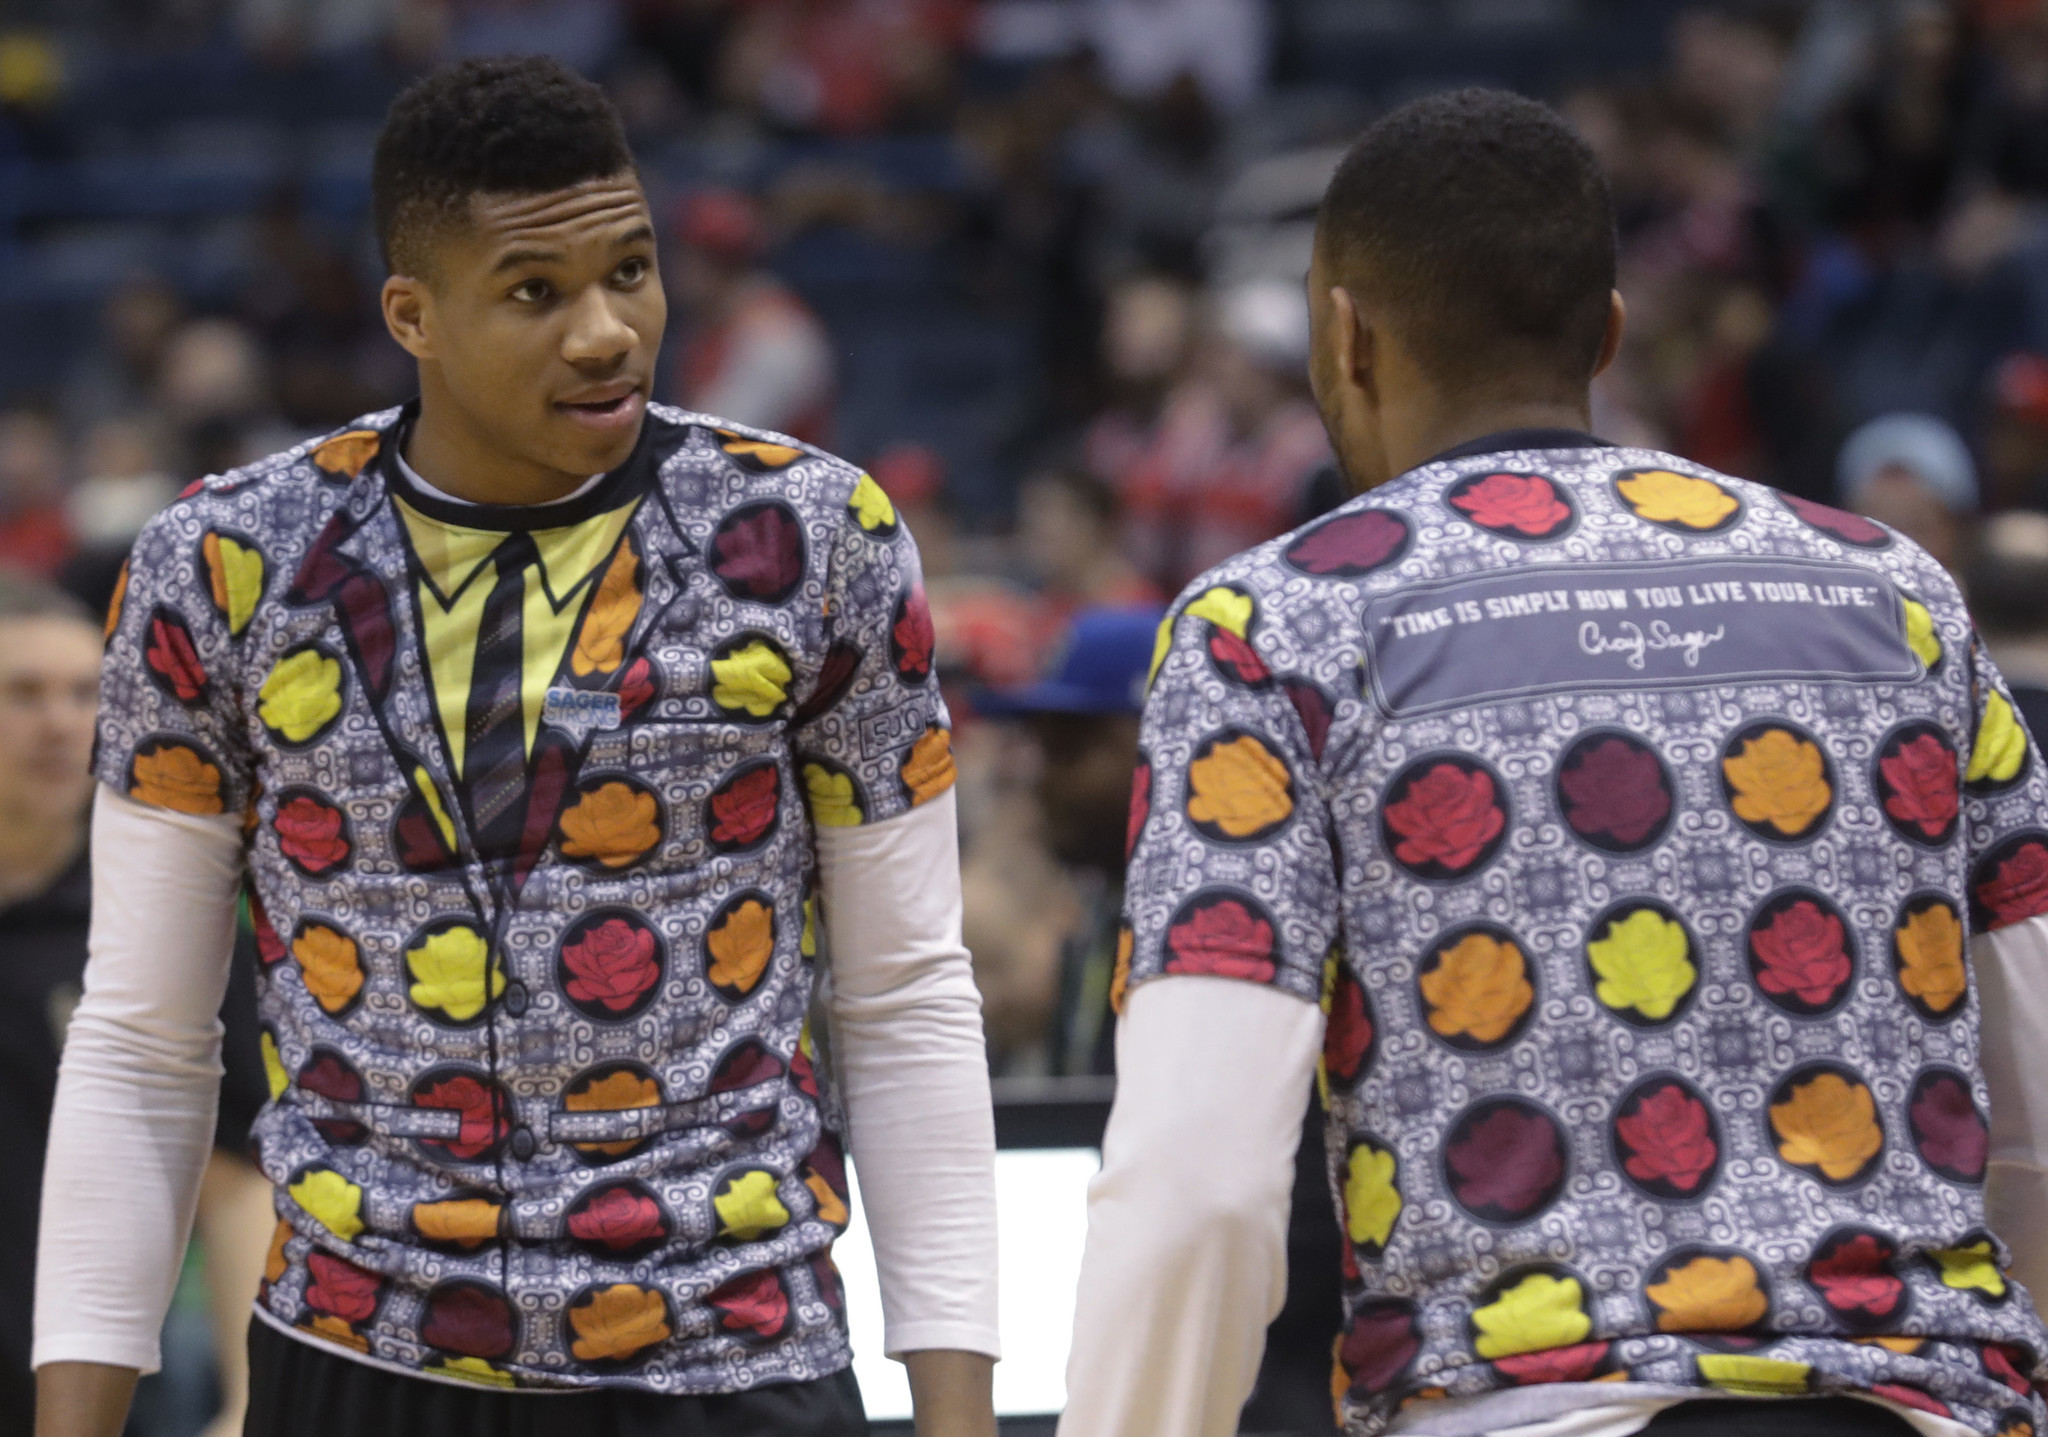 Milwaukee's Giannis Antetokounmpo, left, and Jabari Parker wear shirts to honor Craig Sager.